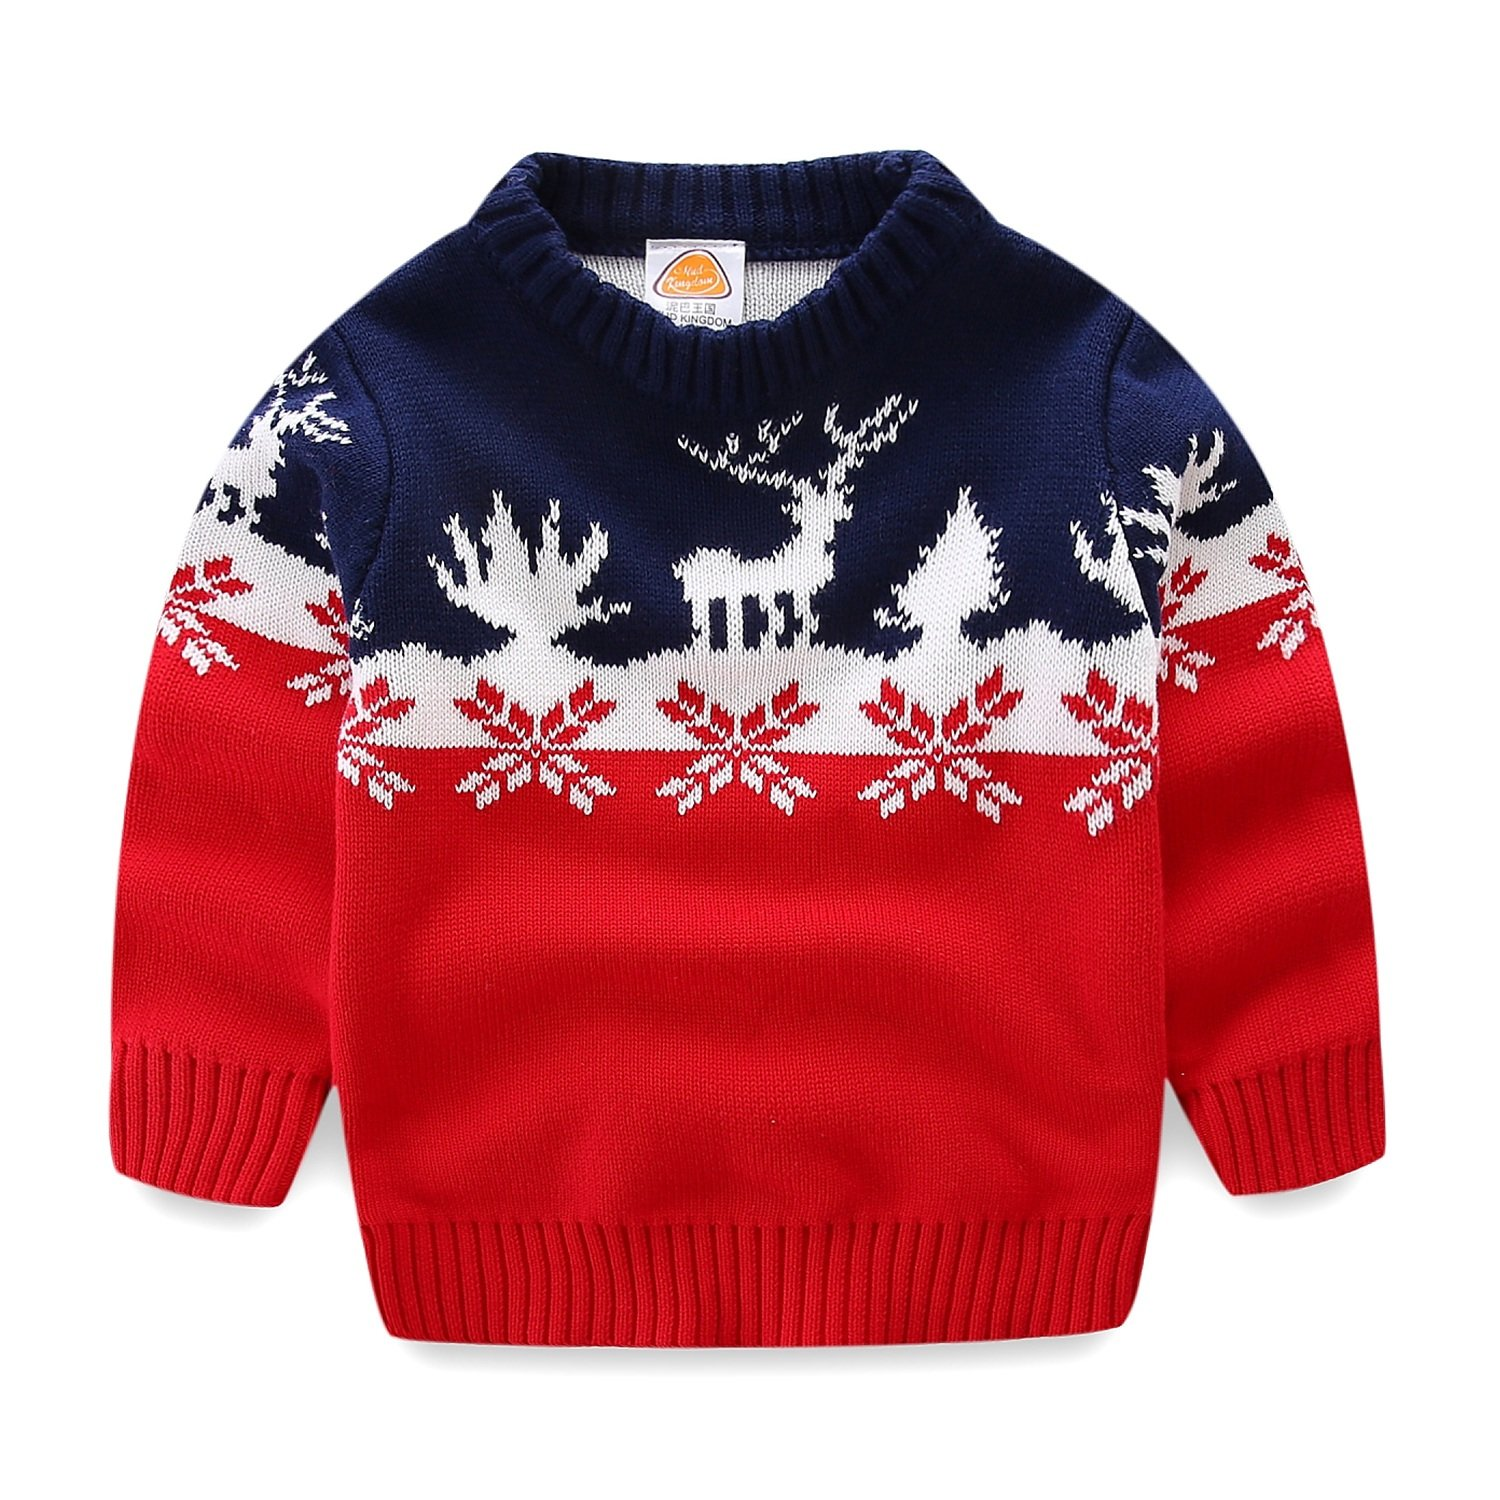 Mud Kingdom Boys Christmas Sweaters Xmas Deer Clothes SS0262